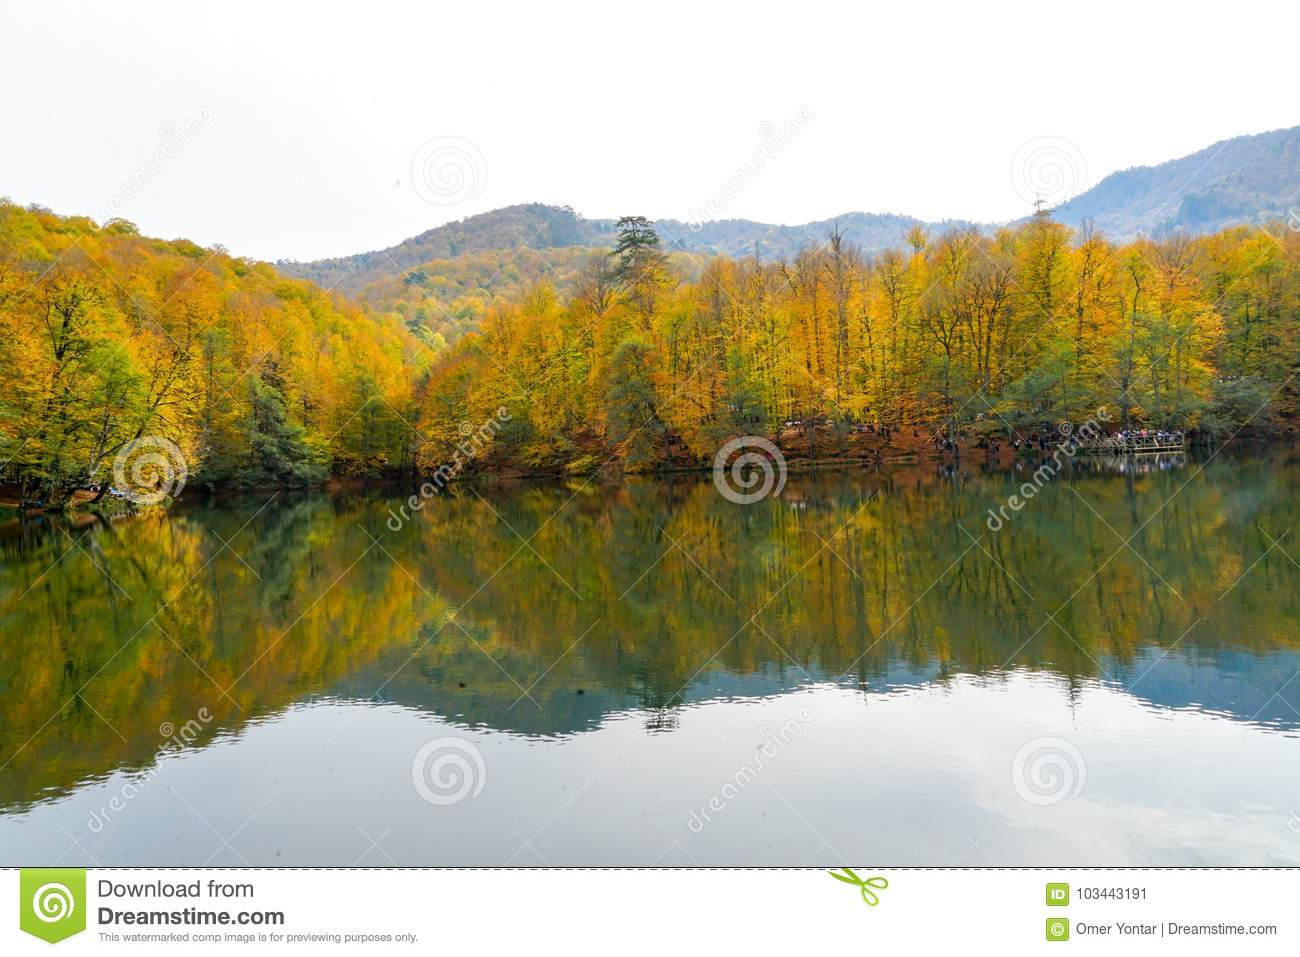 Autumn, forest, colorful leaves and waterfall, stream, lake views